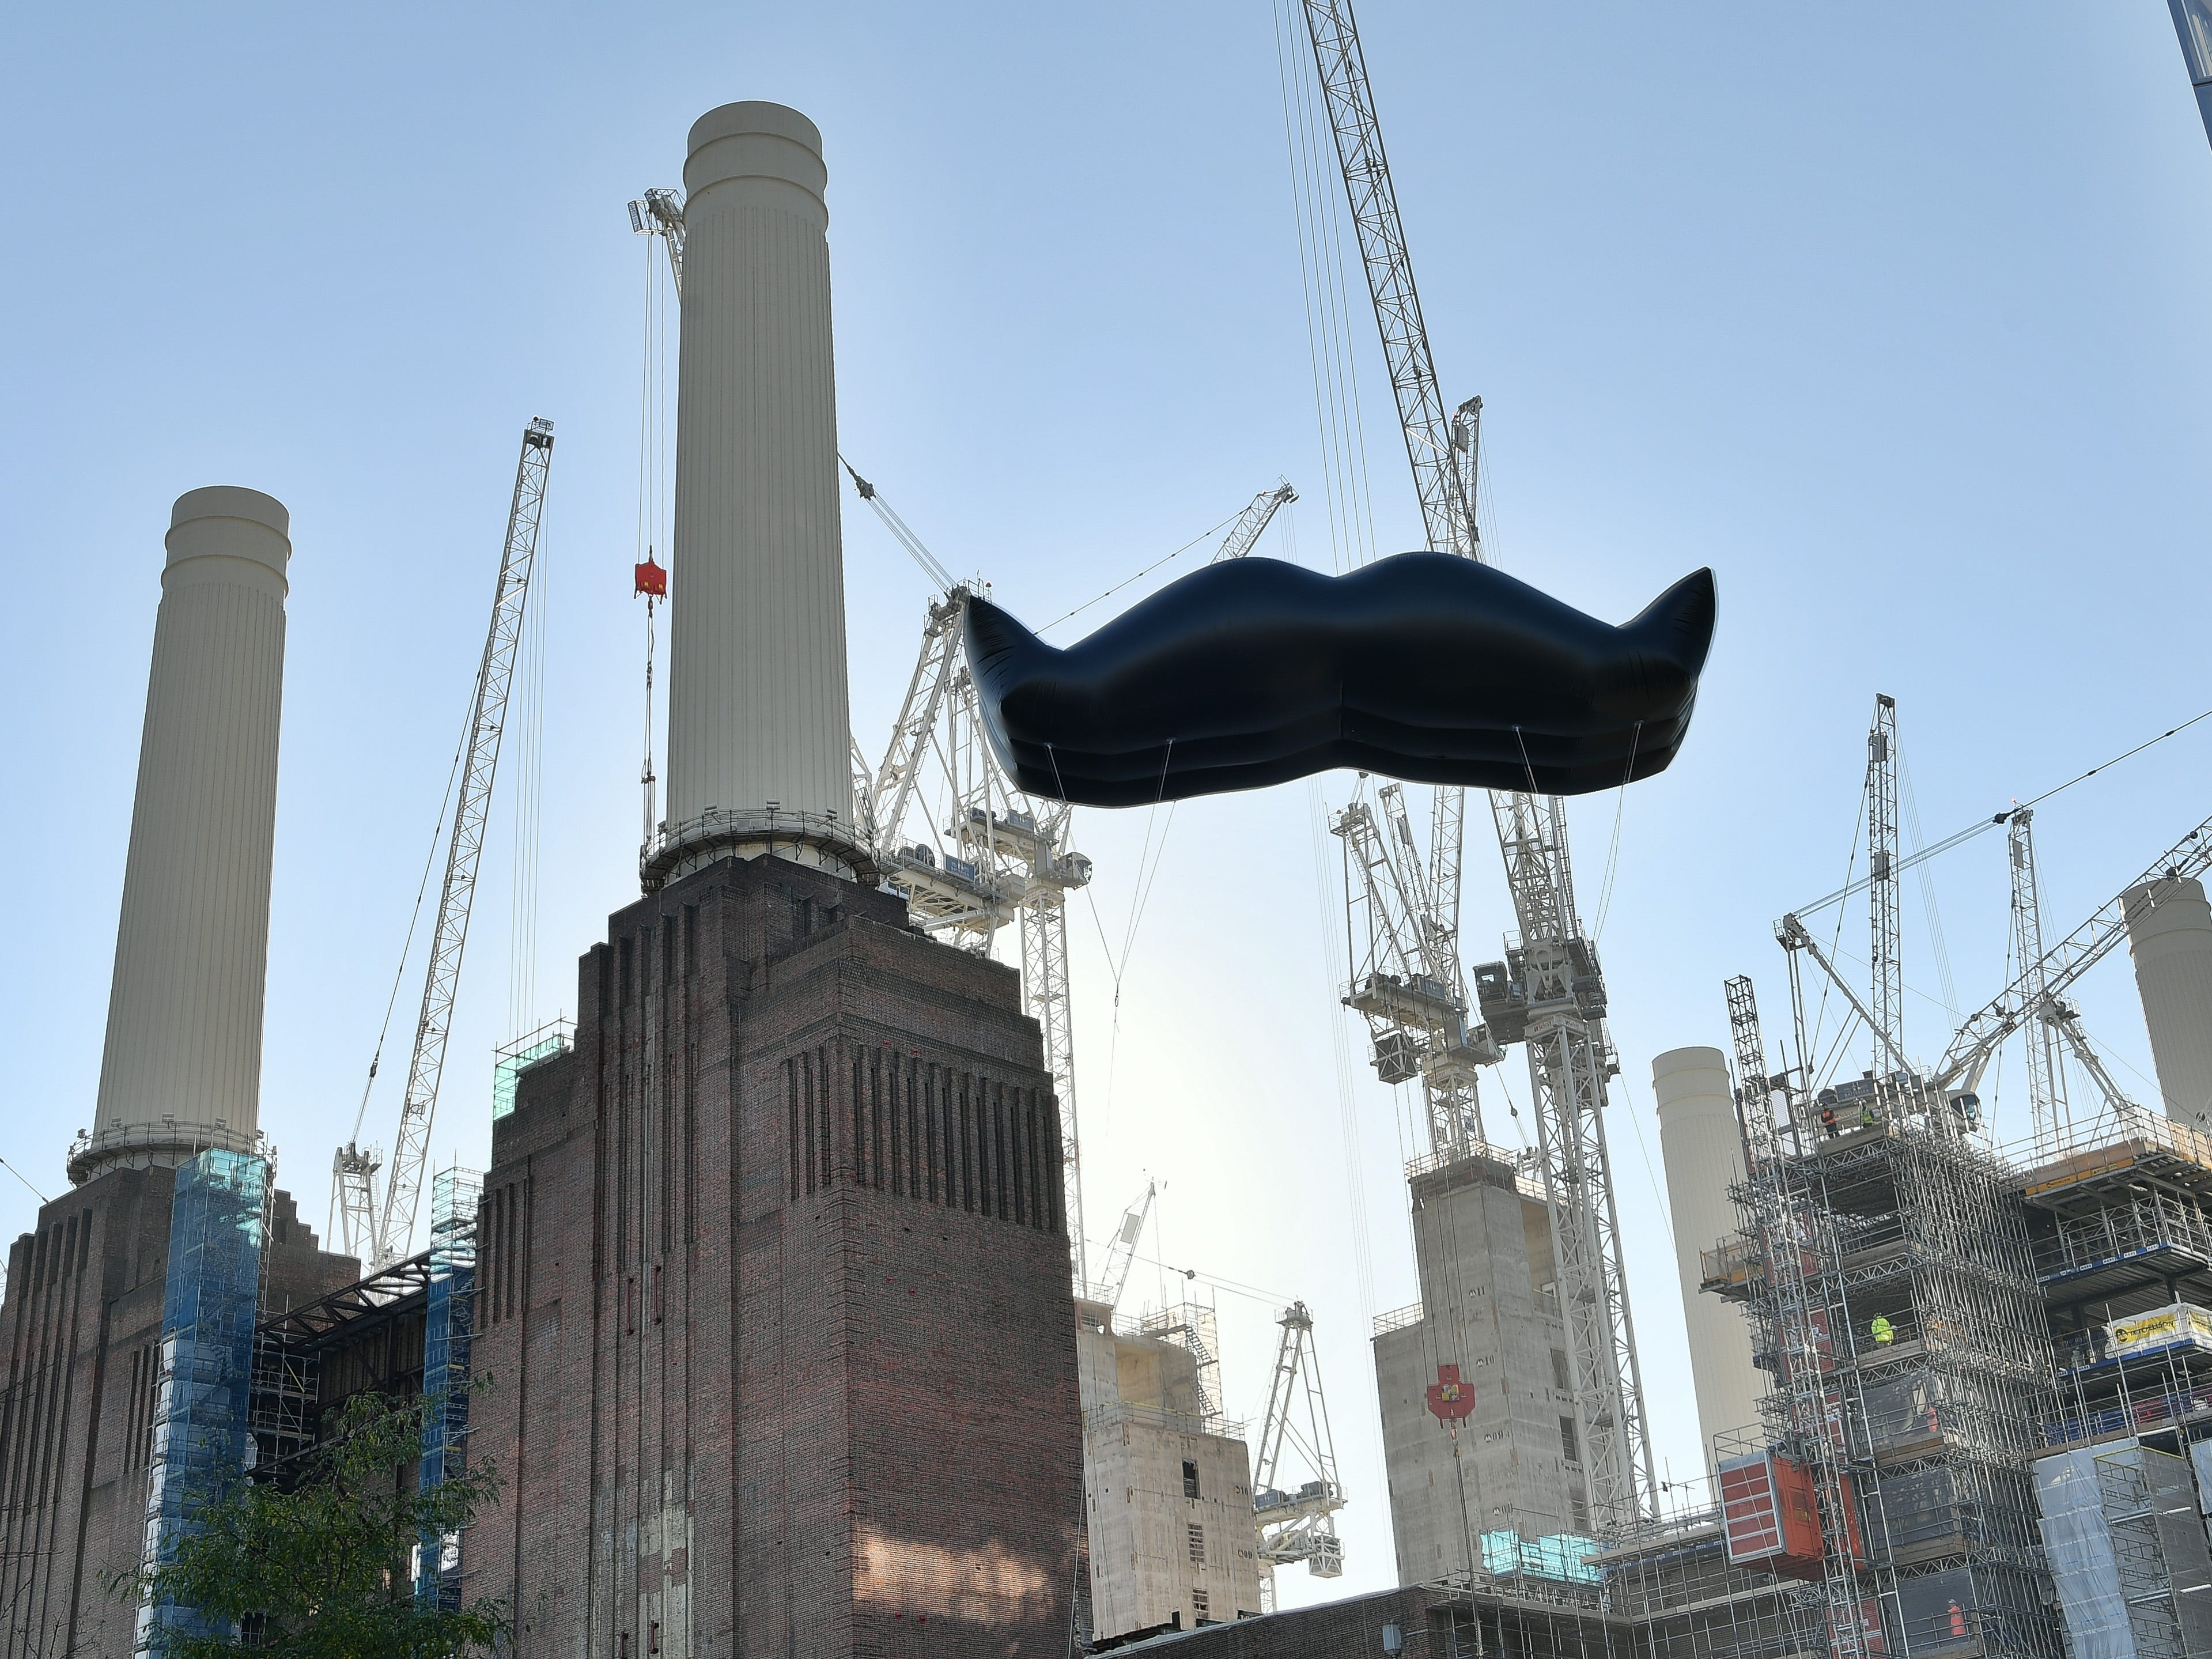 Mustaches appear across London, England as Movember launches the 2018 campaign to get men focusing on their health at Battersea Power Station on Oct. 31, 2018.